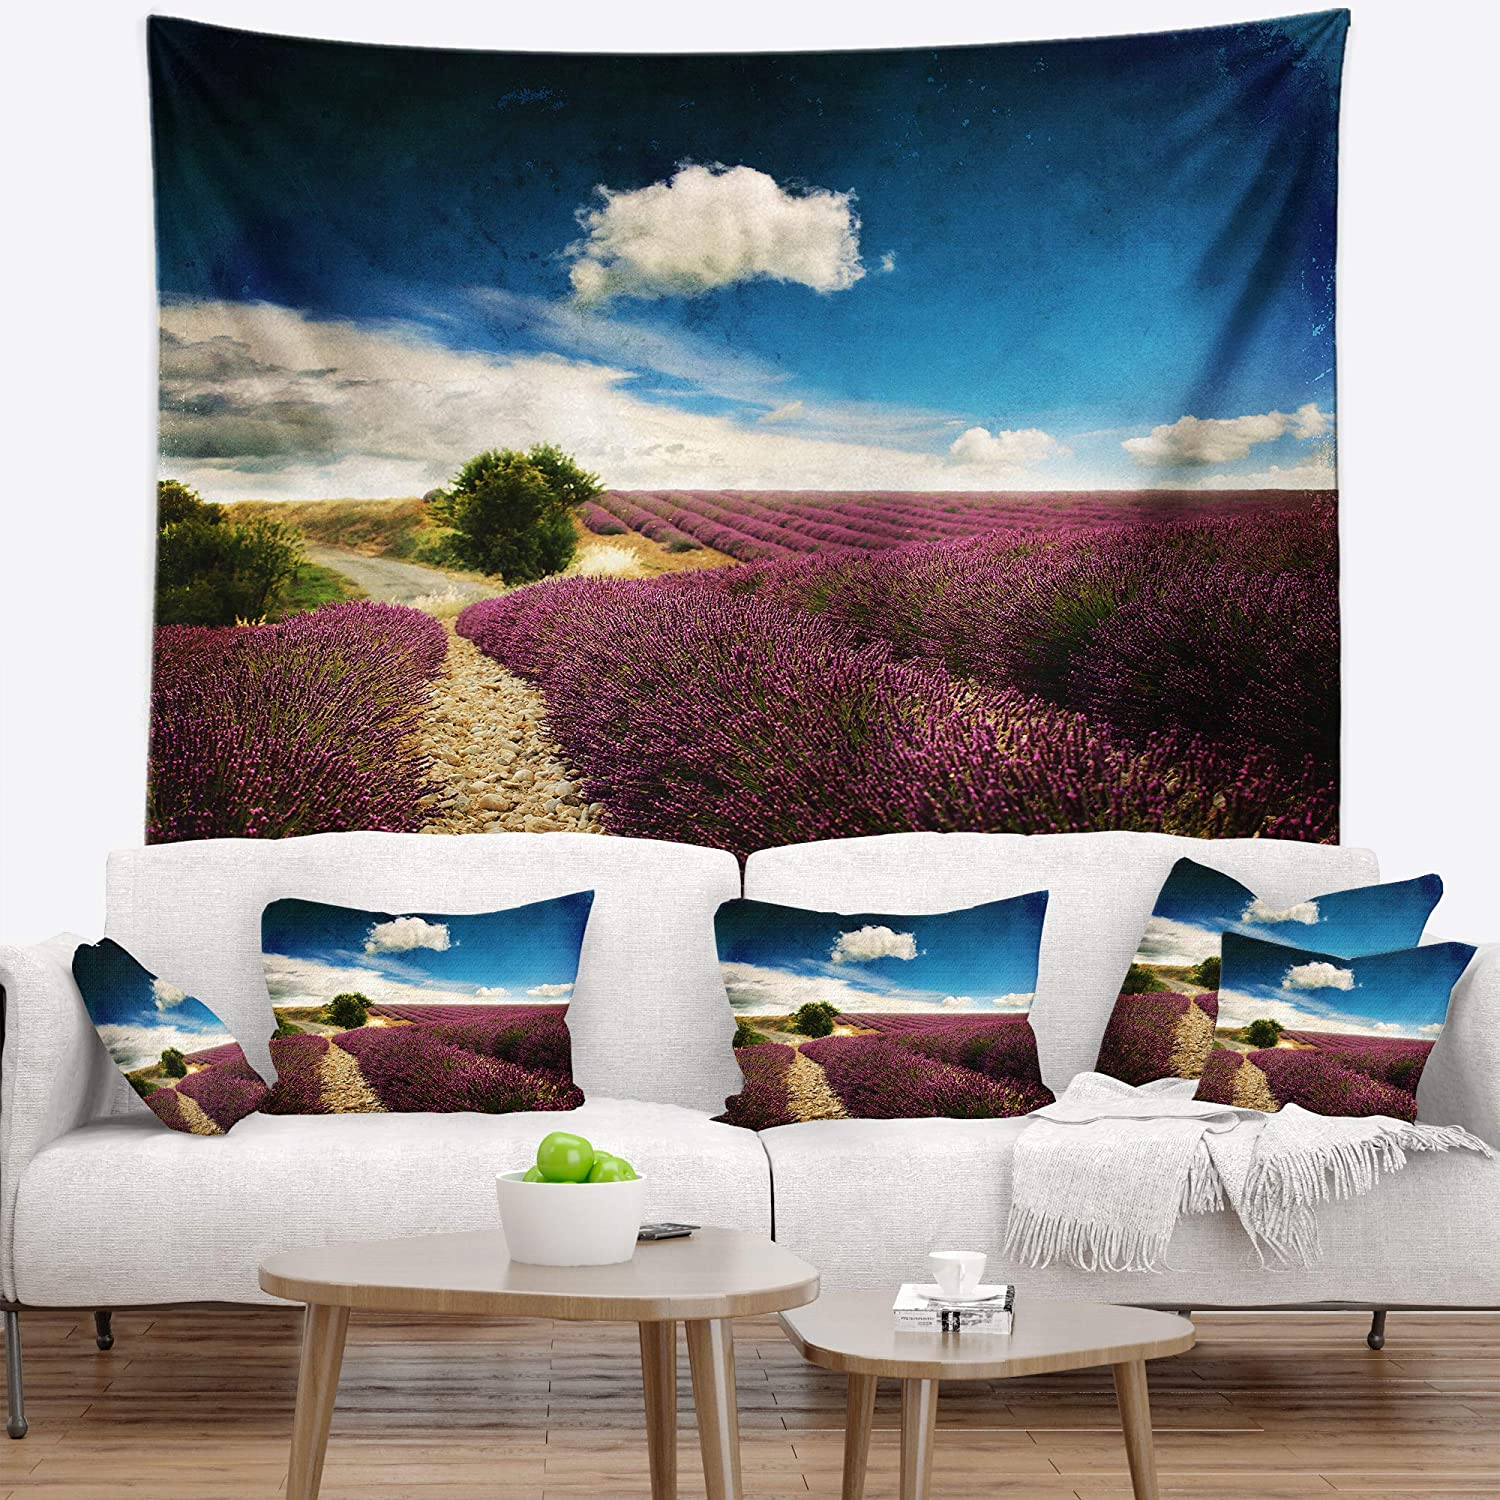 Created On Lightweight Polyester Fabric Designart TAP14748-80-68 Lavender Field with Dramatic Blue Sky Landscape Blanket D/écor Art for Home and Office Wall Tapestry x 68 in x Large: 80 in